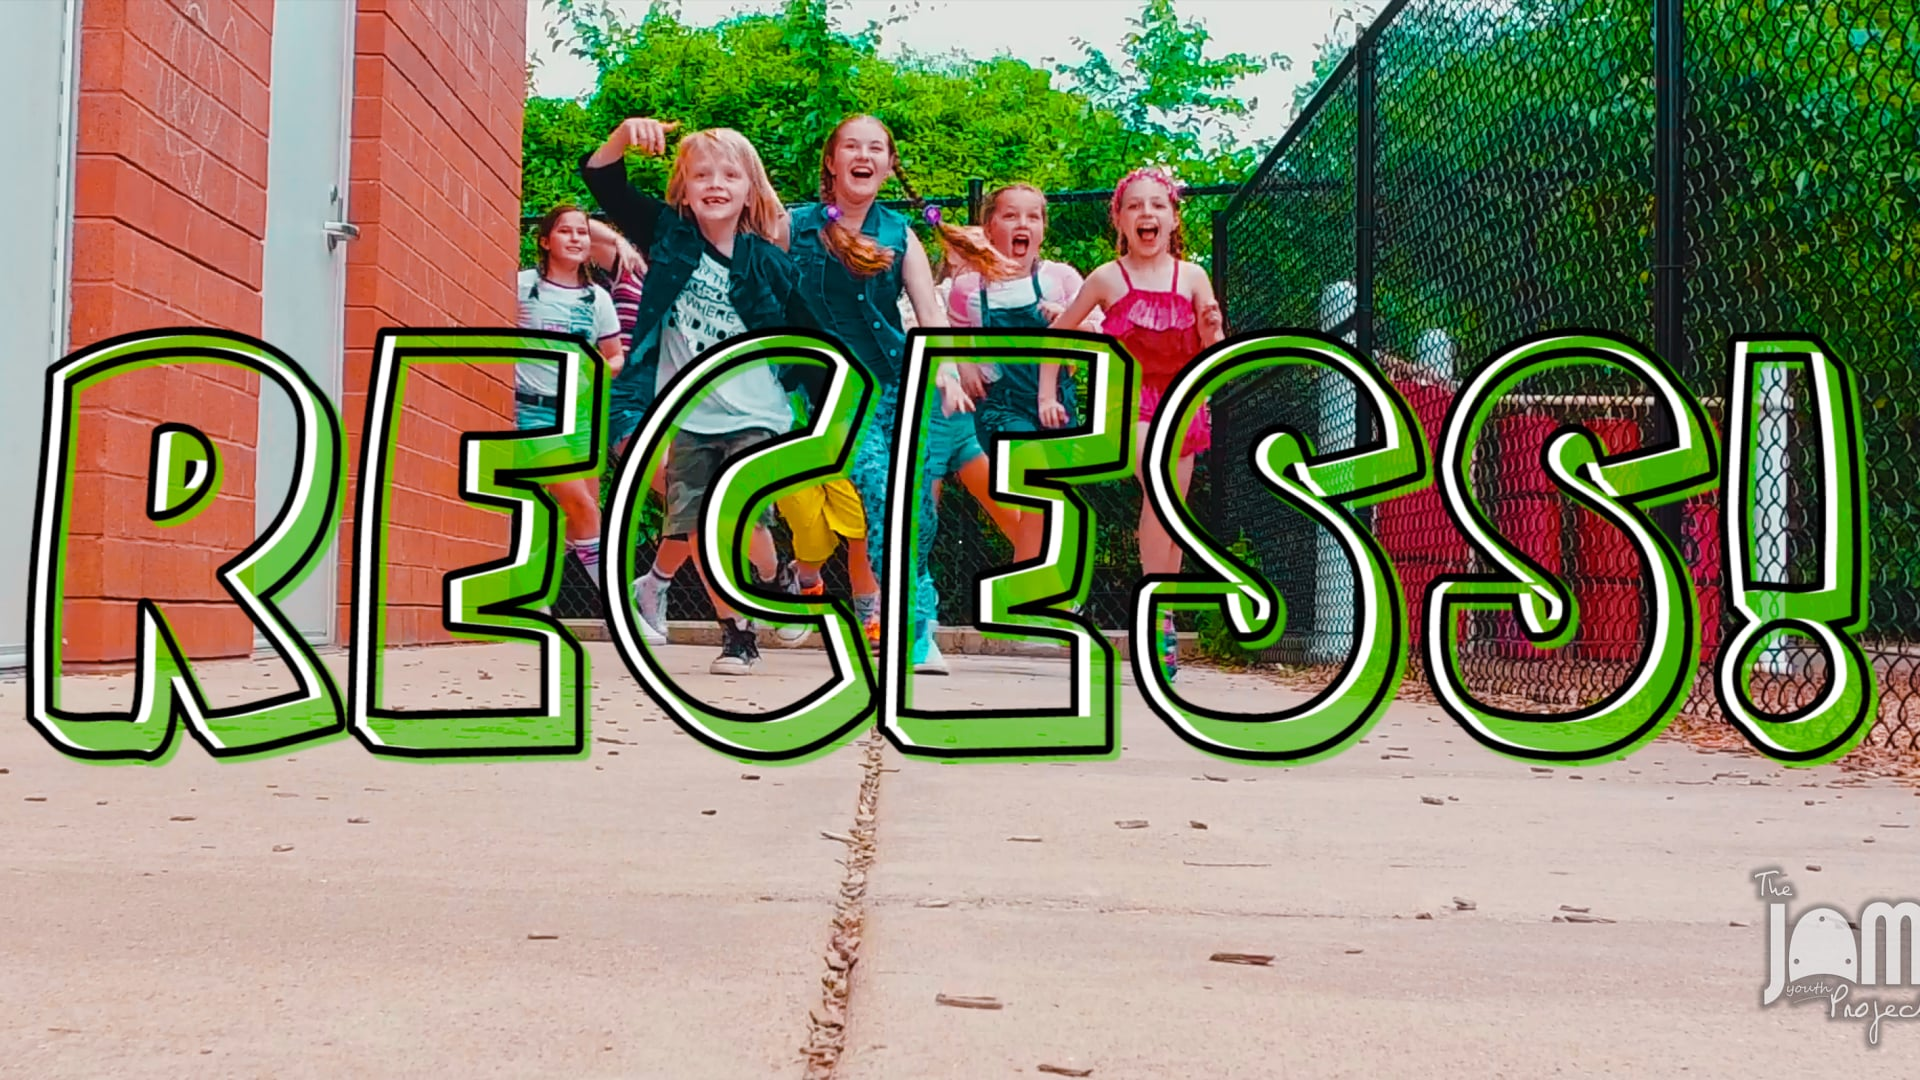 The JaM Youth Project: Recess!